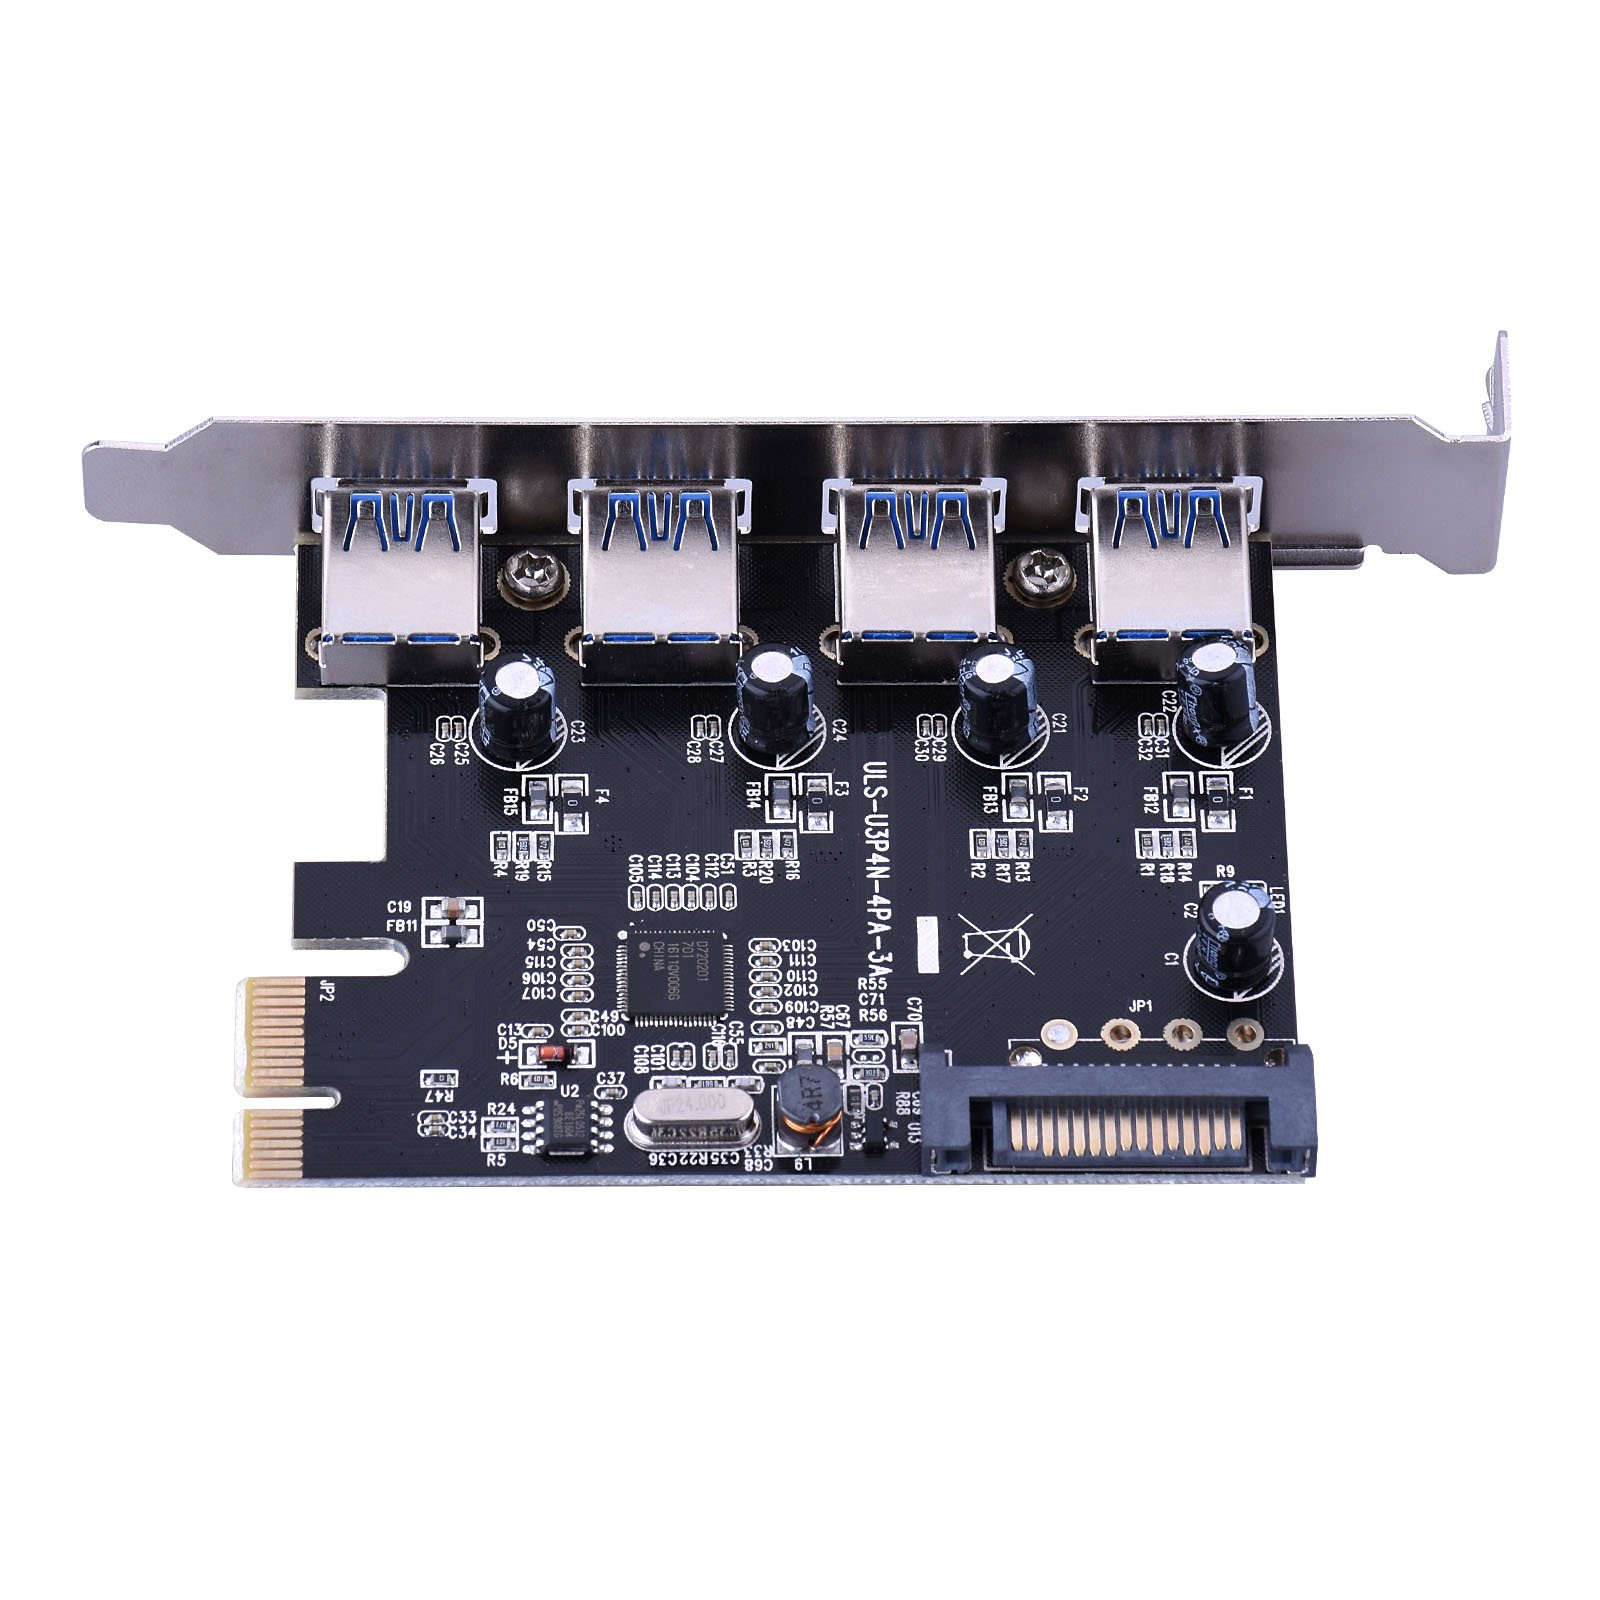 ESHOWEE 4-Port SuperSpeed USB 3.0 PCI-E PCI Express Card with 15-pin SATA Power Connector for Desktops by ESHOWEE (Image #3)